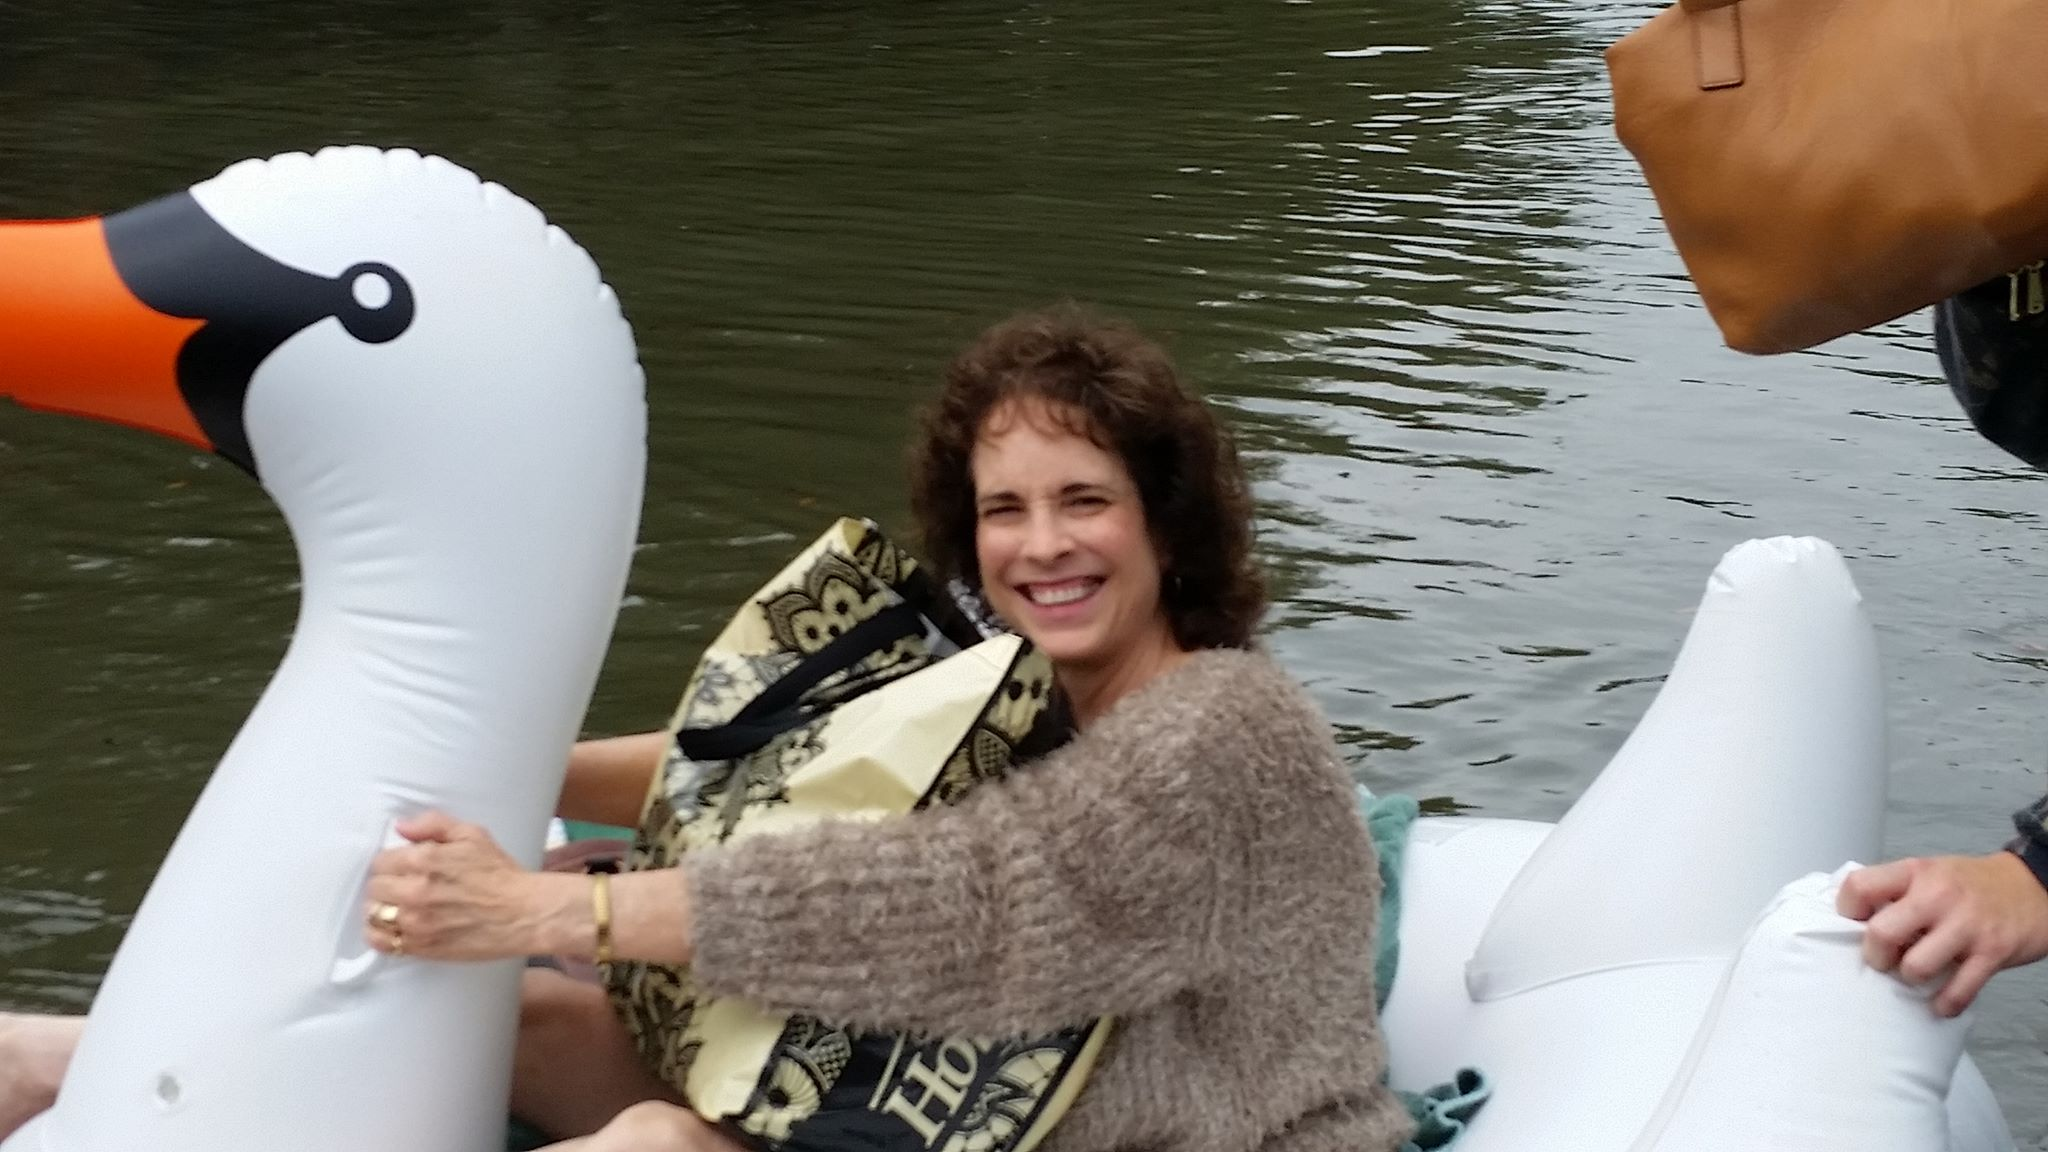 Midwife Rides Inflatable Swan Through Floodwaters to Deliver Baby